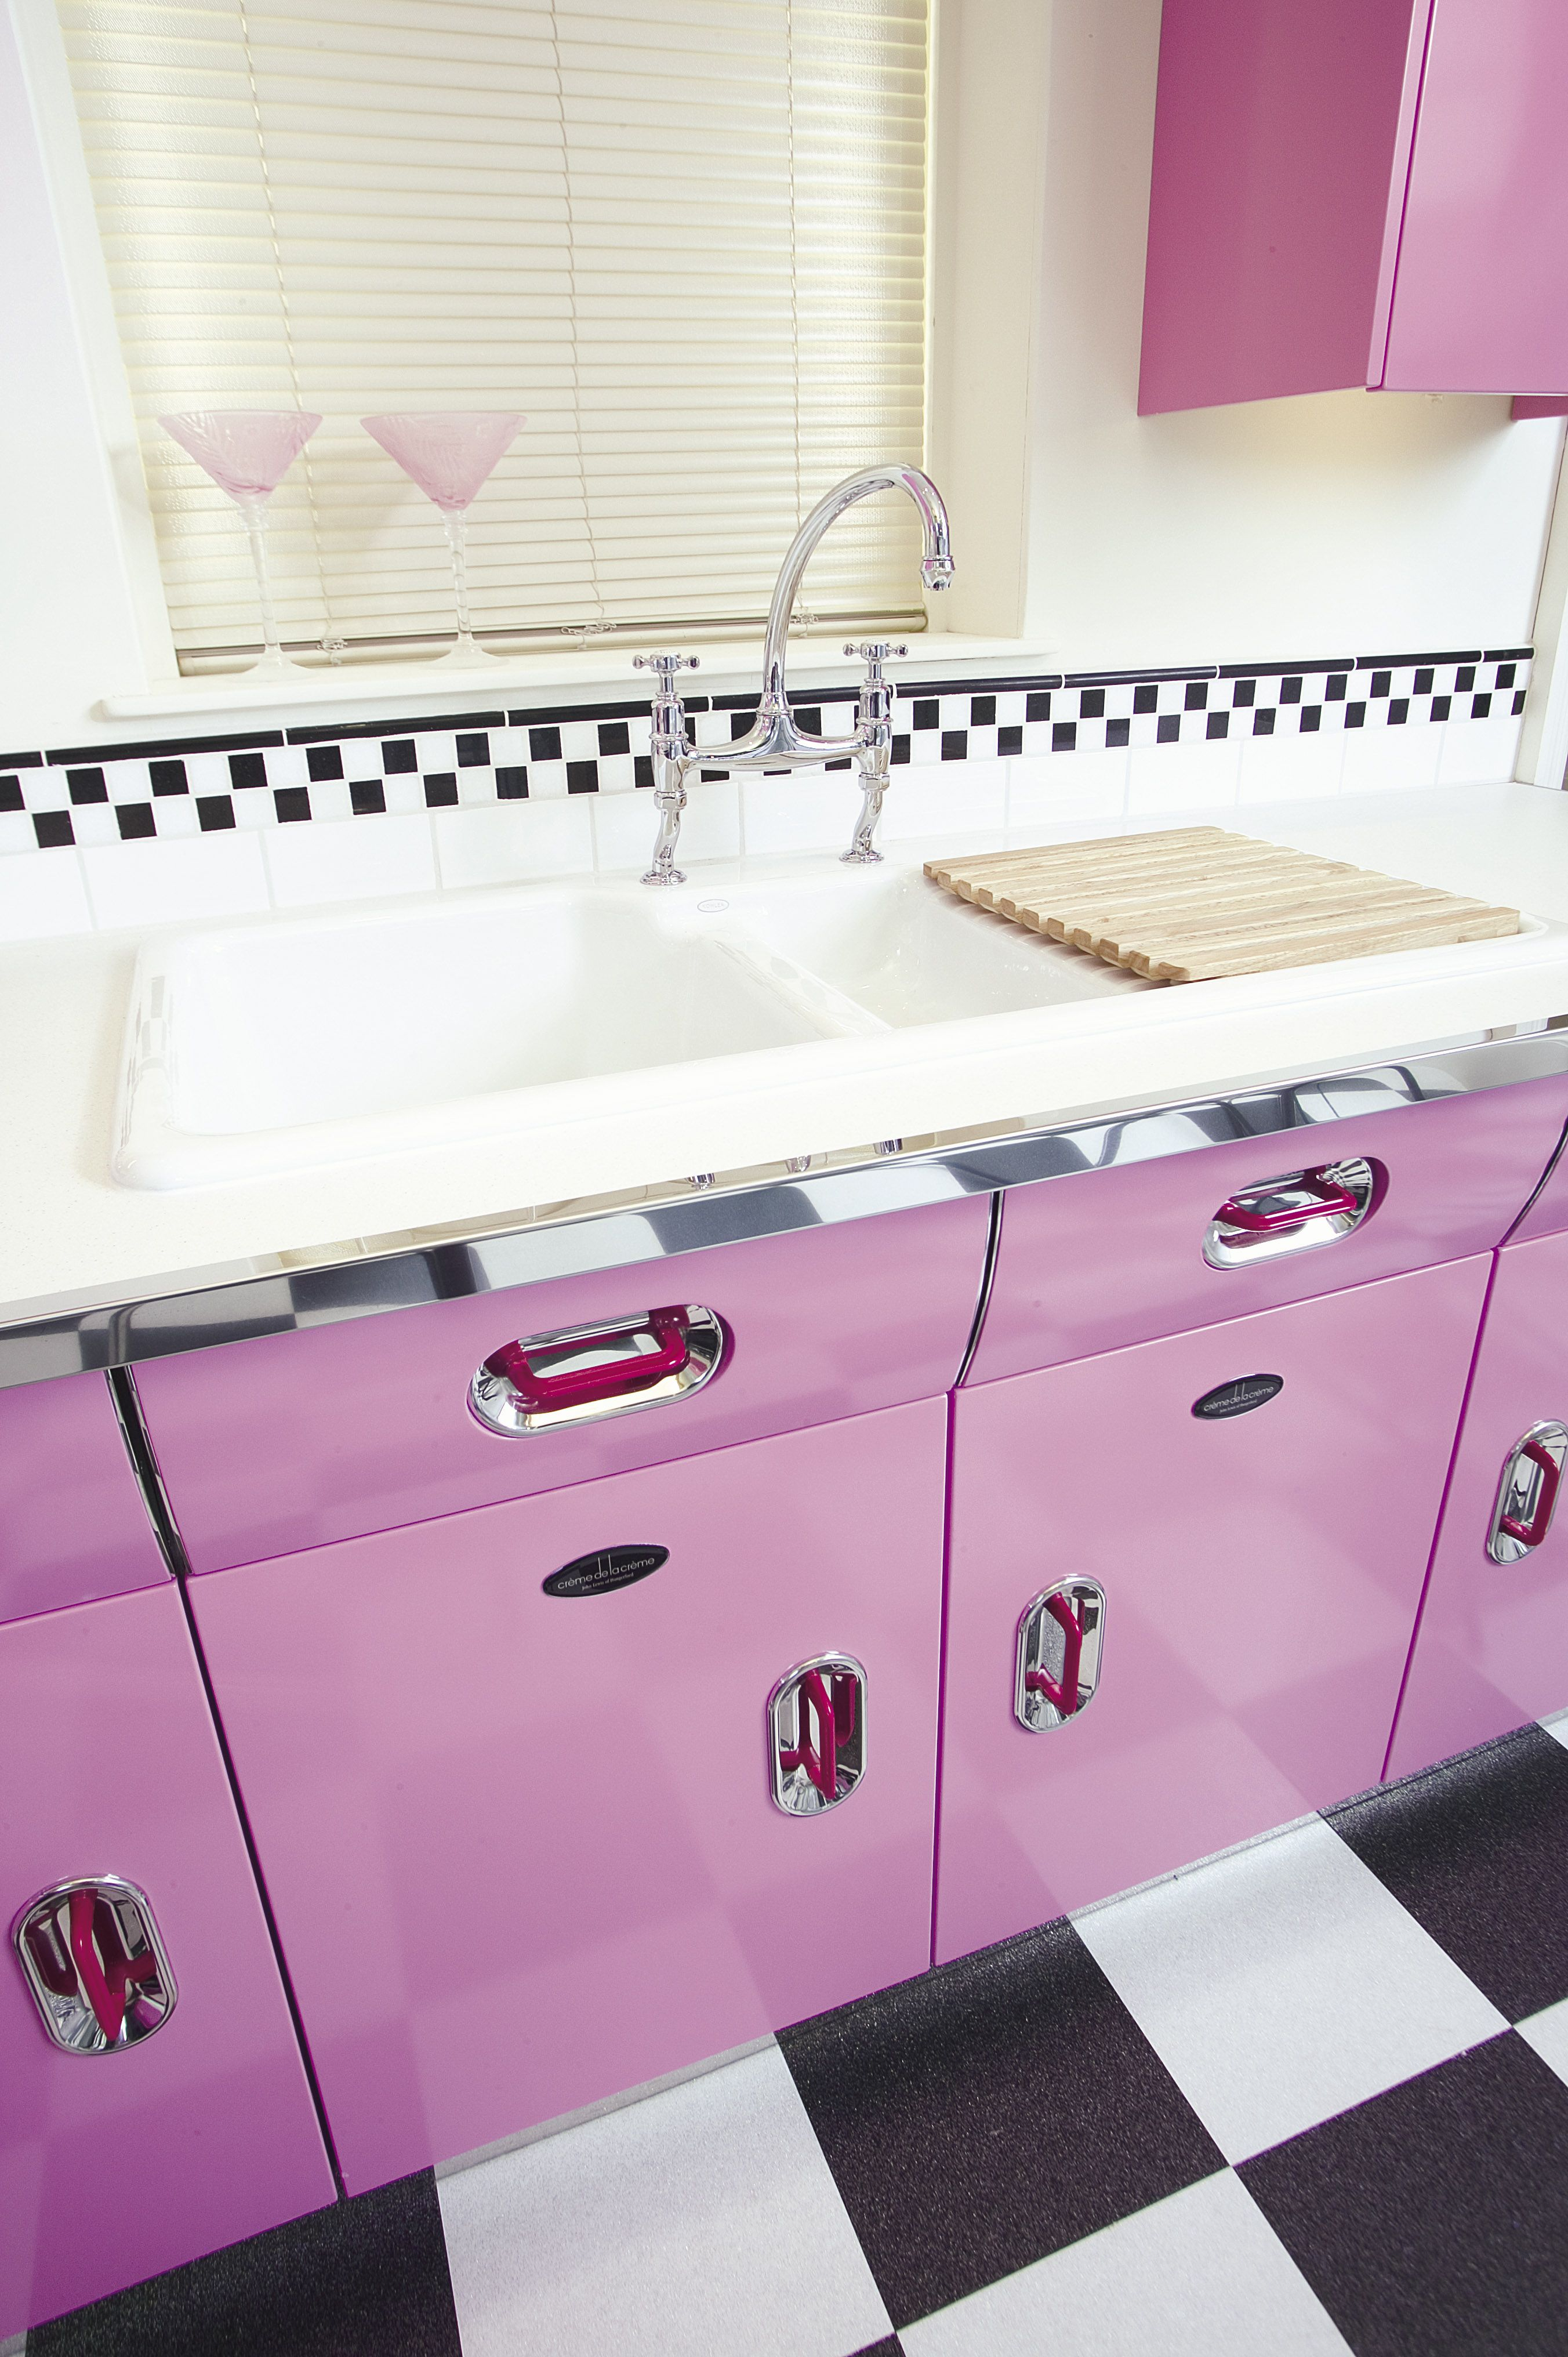 All Pink Kitchen John Lewis Of Hungerford English Rose 1950S Vintage Inspired